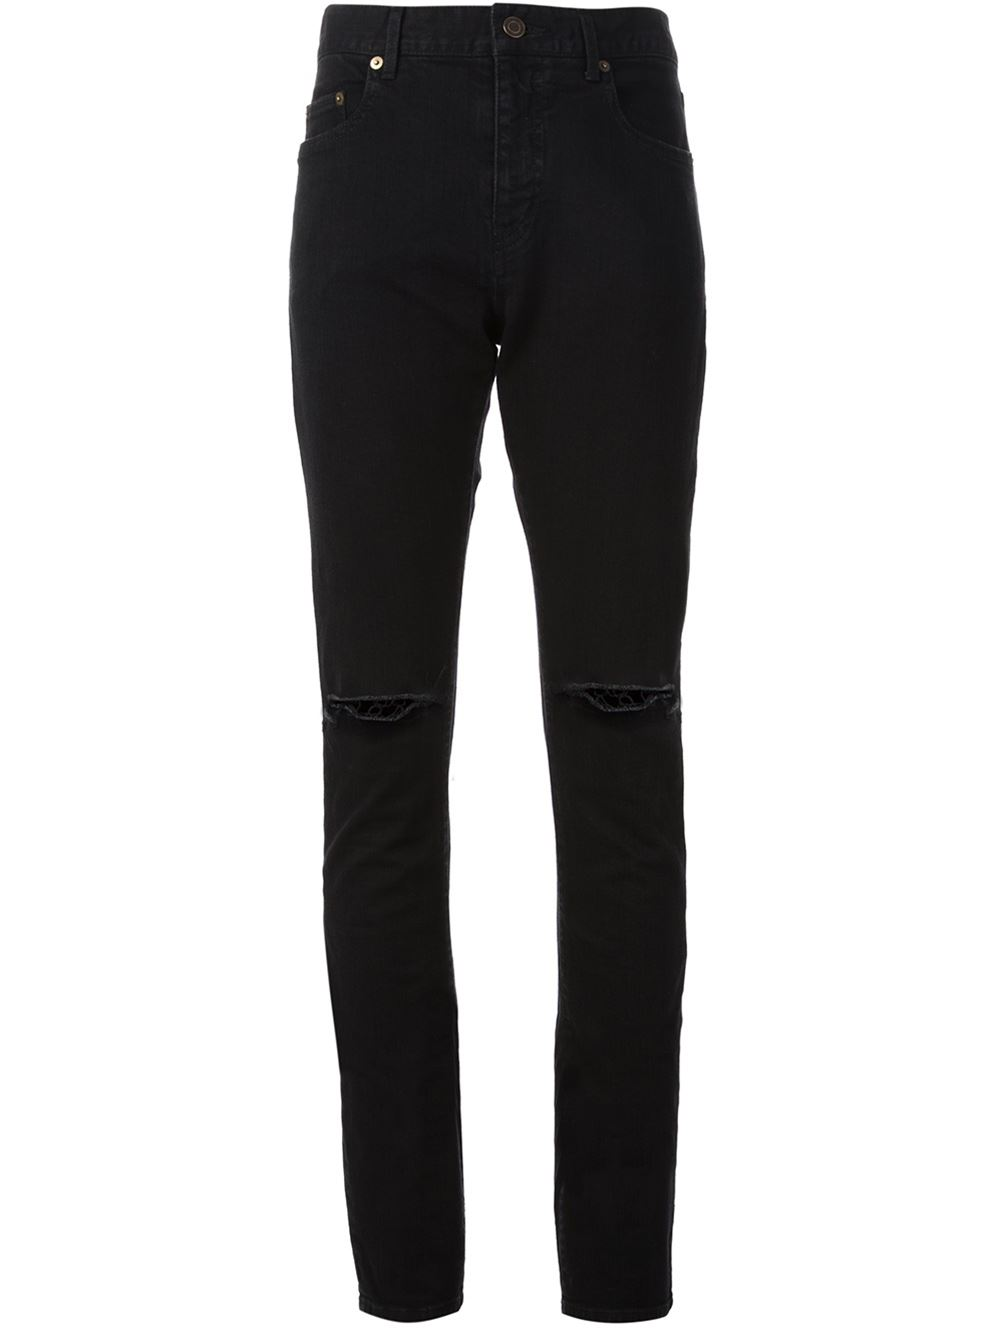 Saint-Laurent-ribbed-jeans